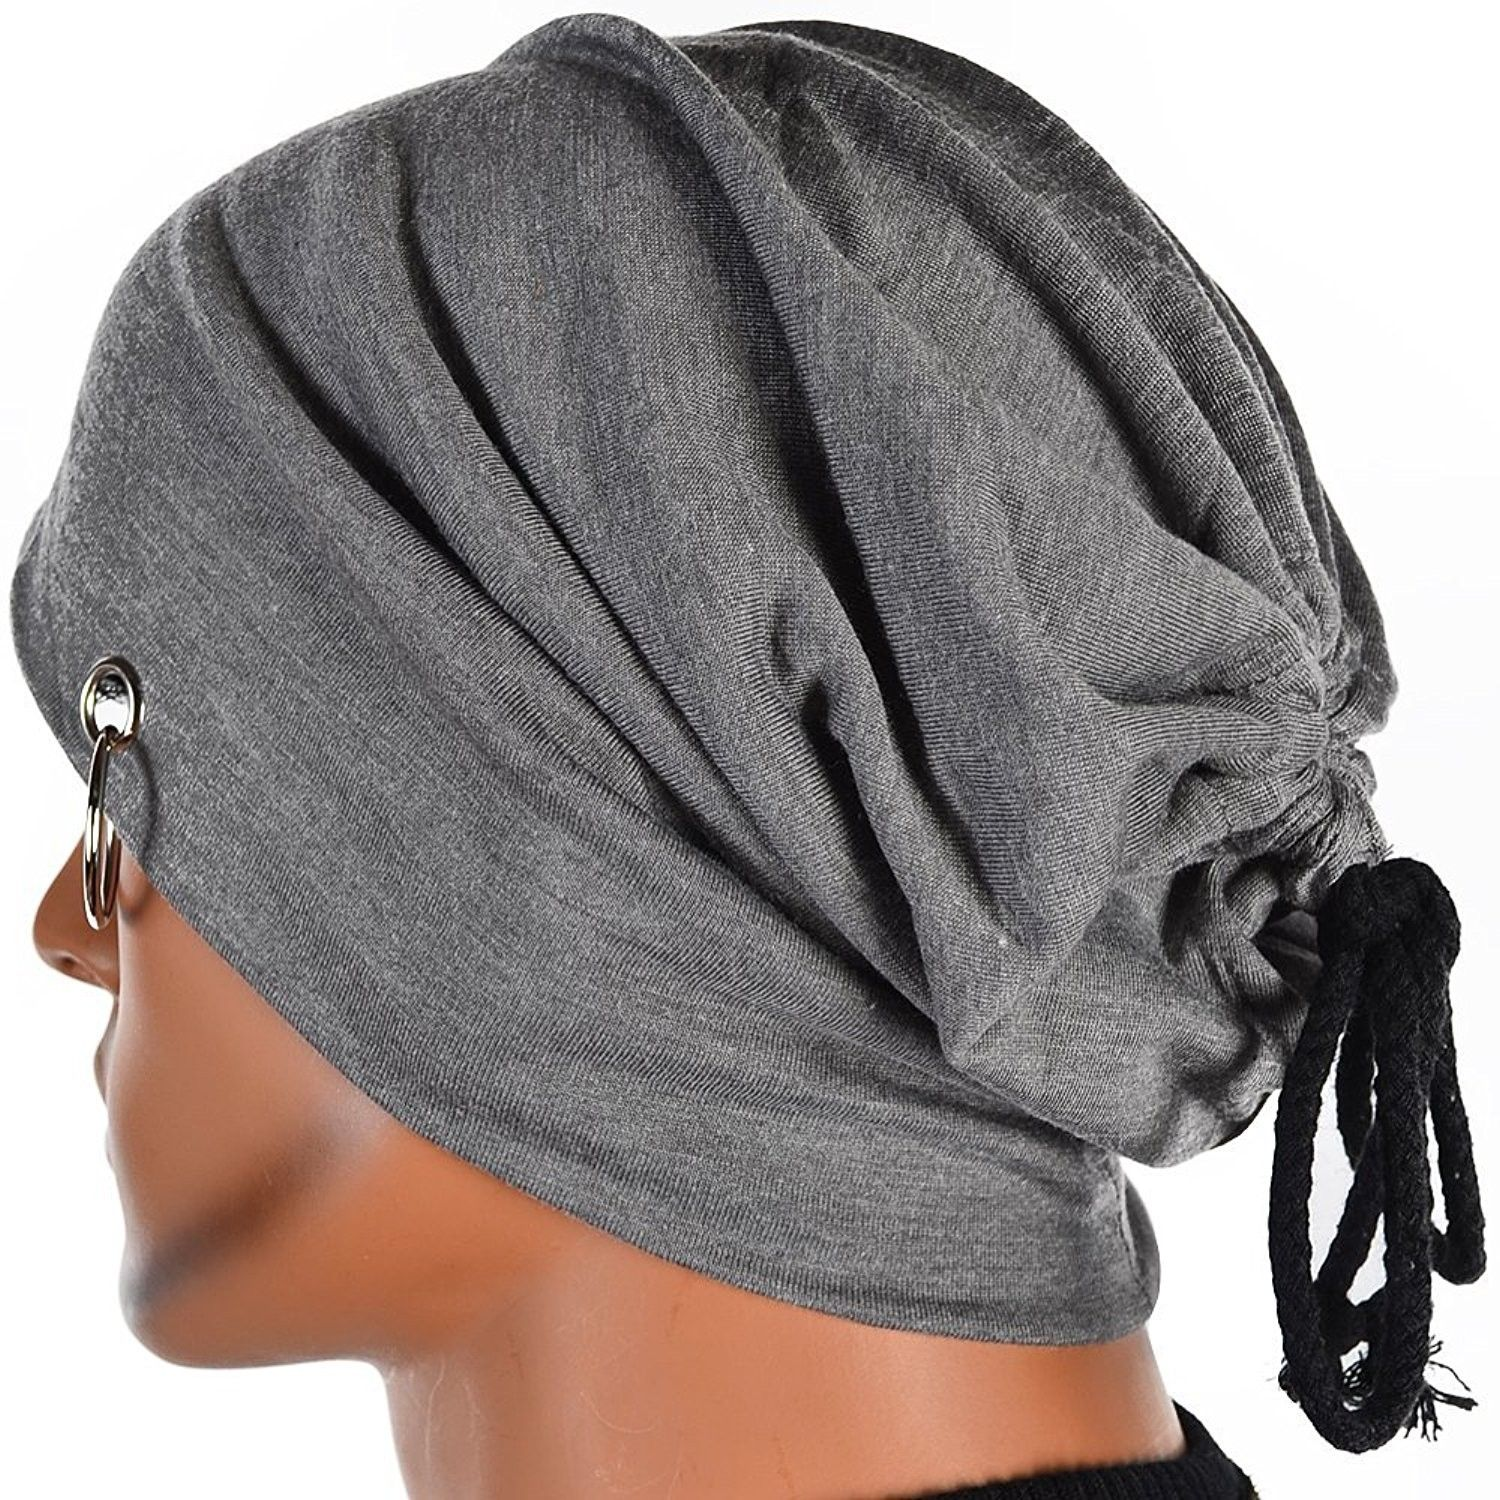 Men Ring Lacing Beanie Thin Hip-hop Skull Cap Unisex Bd (Medium Gray) -  CB11MMI2EBX - Hats   Caps e96cf2388d7